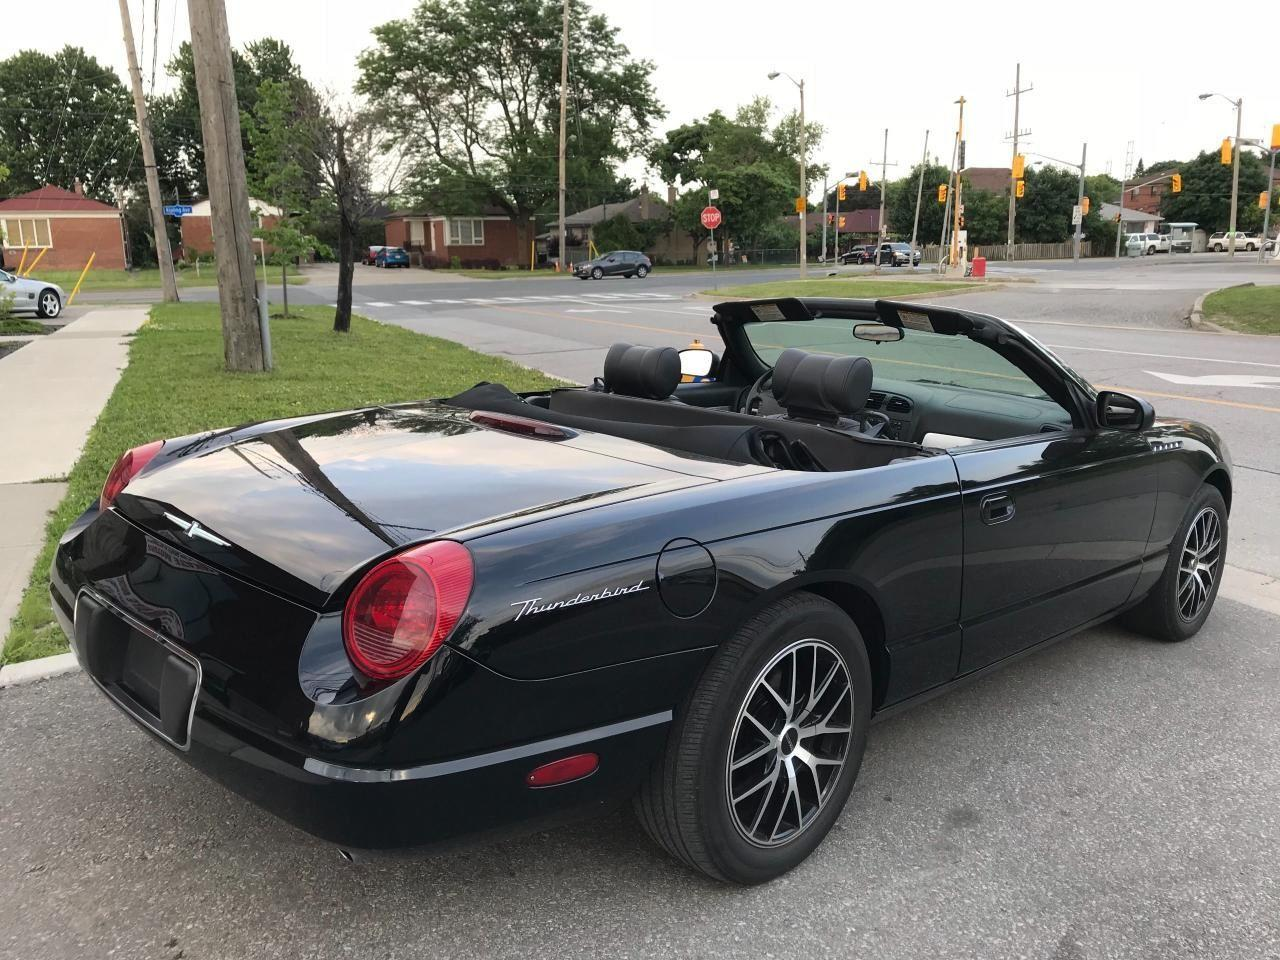 Used 2002 Ford Thunderbird ROADSTER for Sale in Rexdale